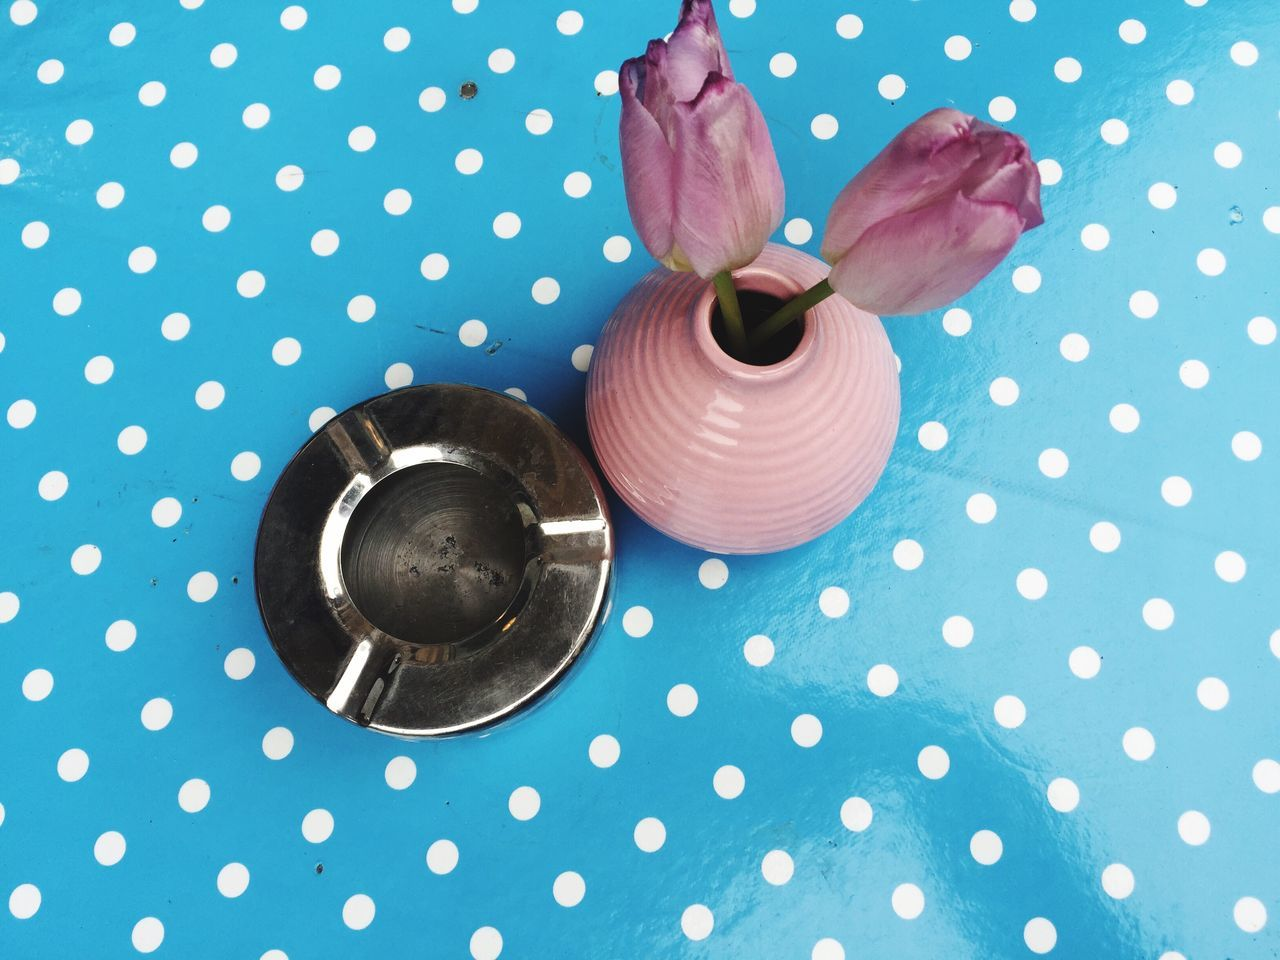 Polka Dot Pink Color Spotted No People Close-up Table Indoors  Freshness Morning Blue Cigarette  Ashtray  Cafe